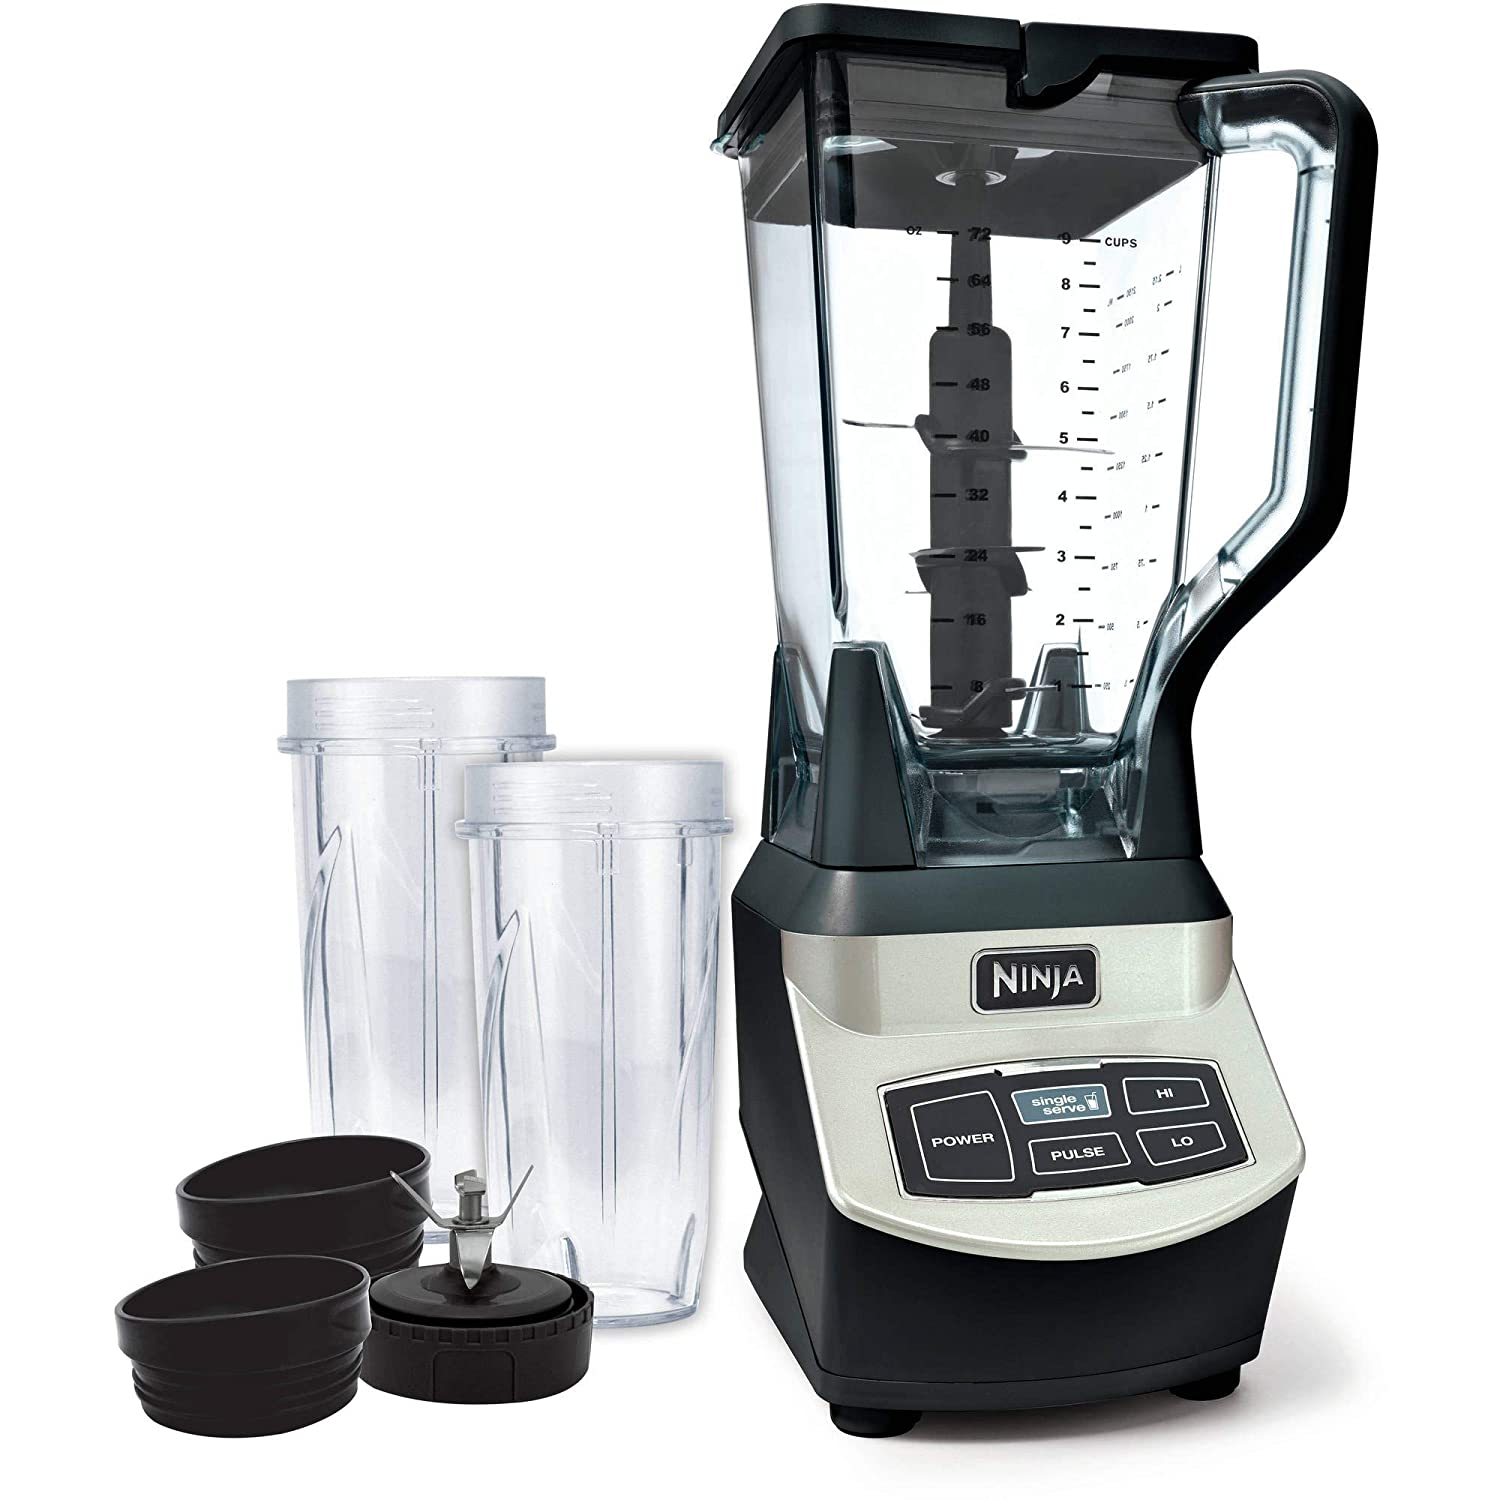 Ninja Professional Blender with Single Serve Cups with an Impressive 1000 Watts Motor Base and XL 72ox Capacity Pitcher BL660WM Renewed Renewed